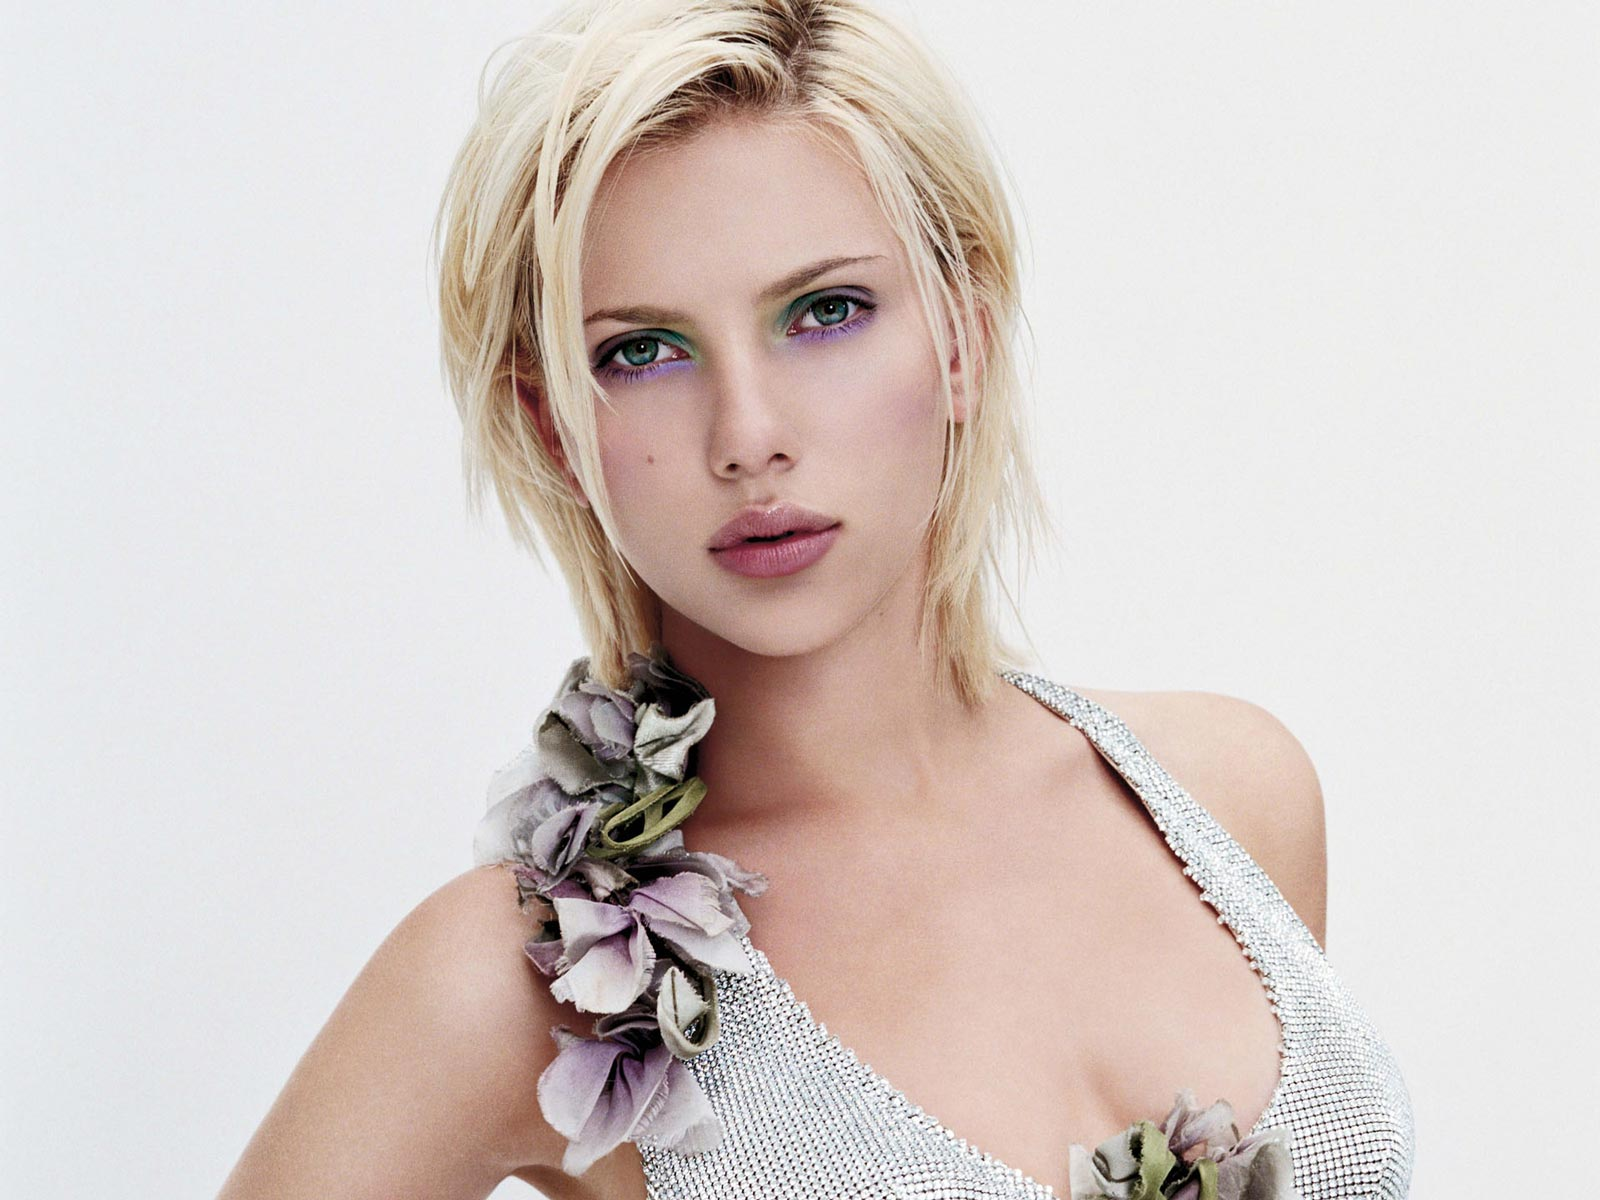 Scarlett johansson 39 s uncensored nude shots from sci fi for Top new images